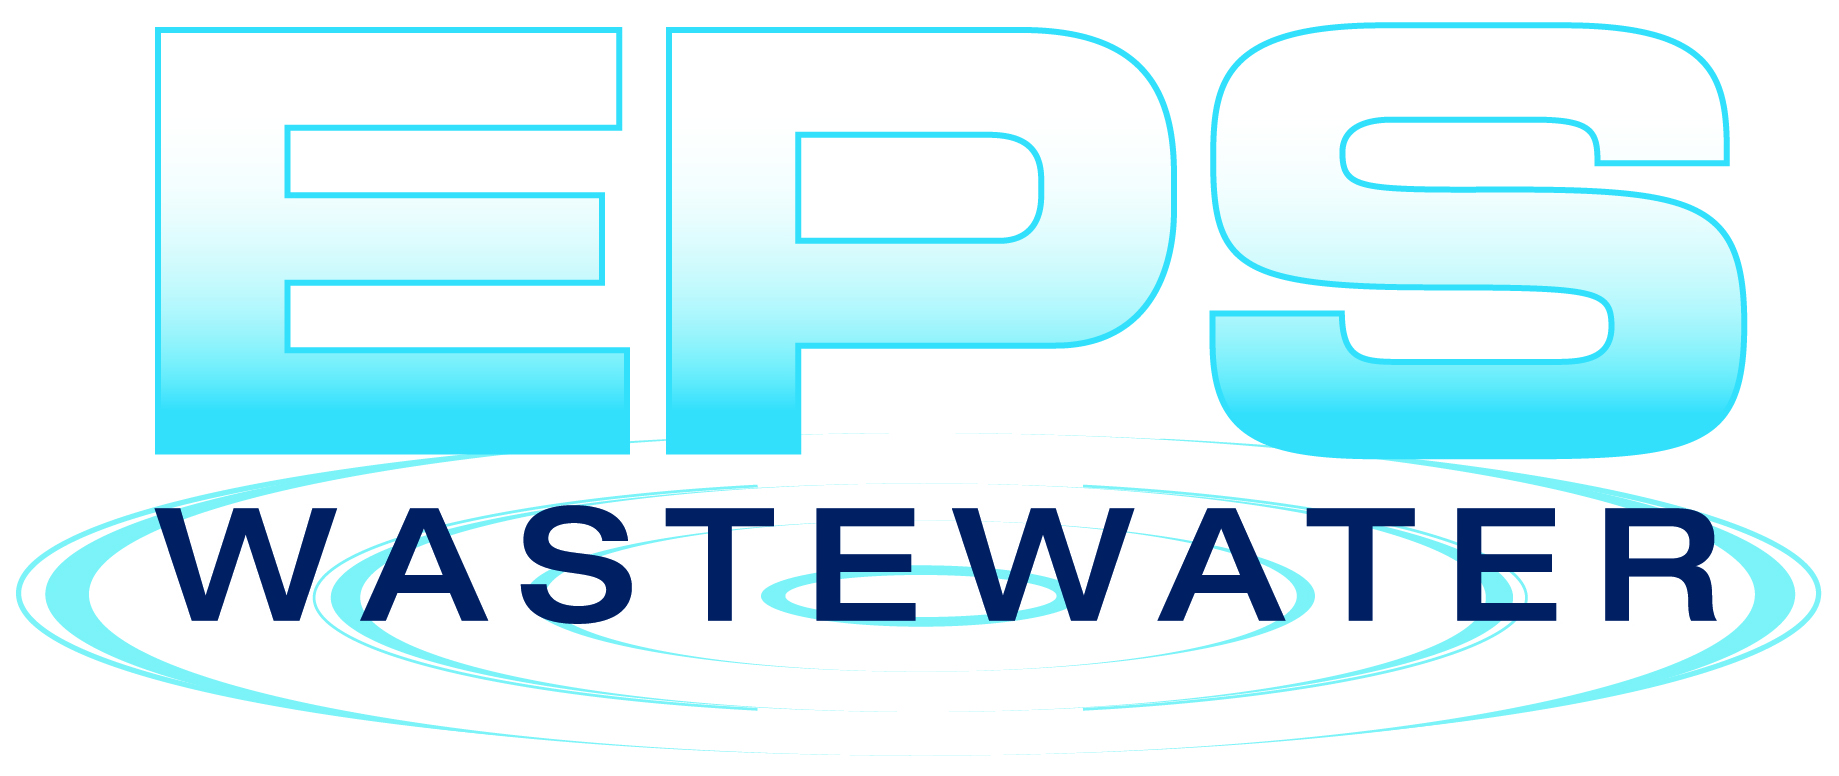 - EPS Wastewater specializes in the design and manufacturing of wastewater treatment equipment for customers of any size.